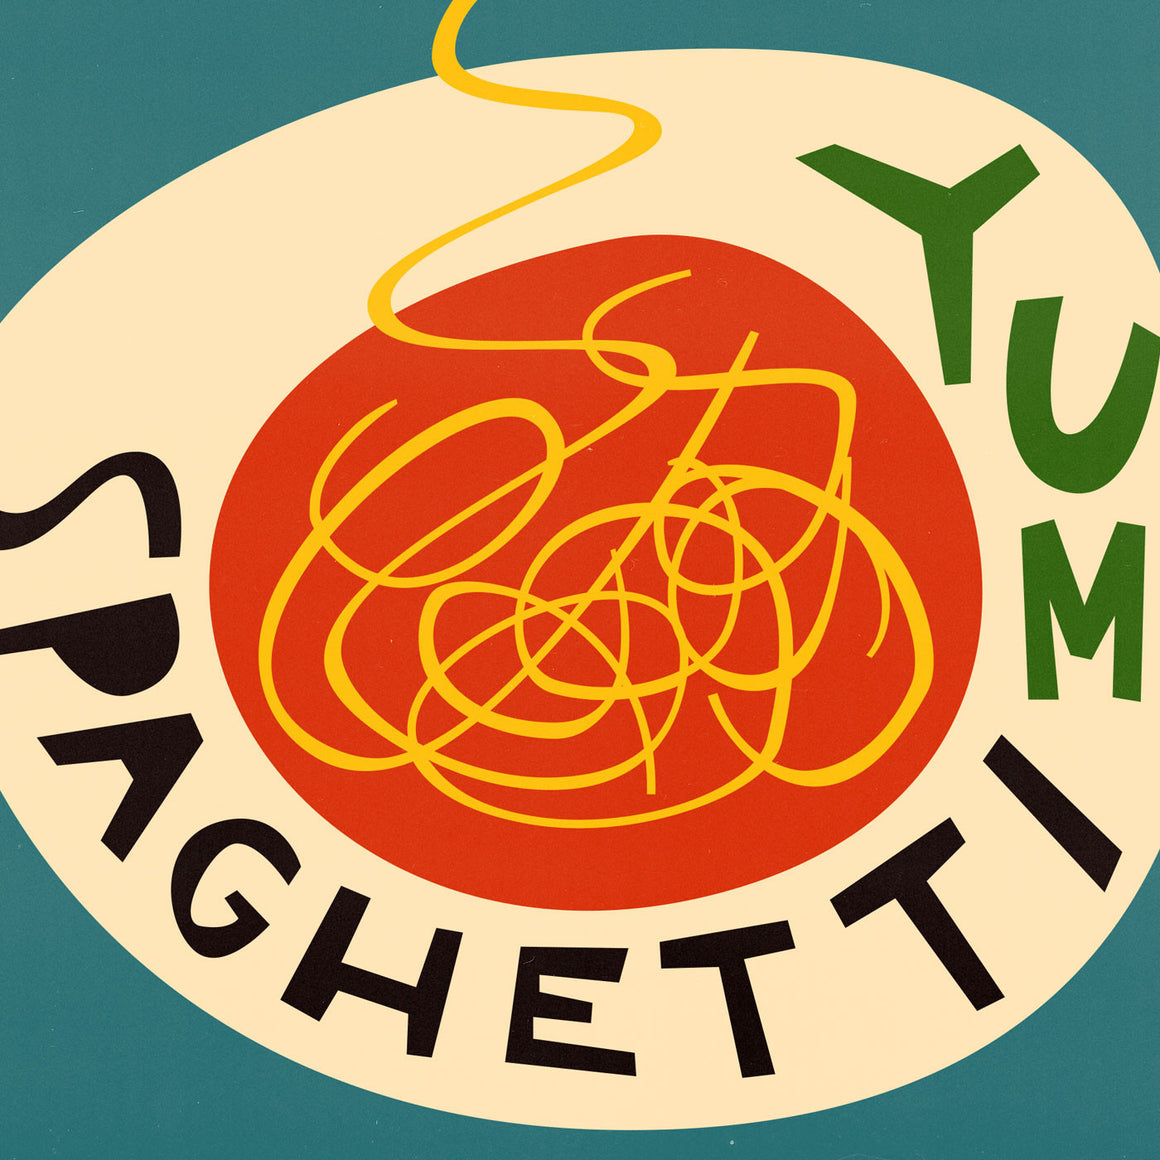 Retro Spaghetti Food Illustration